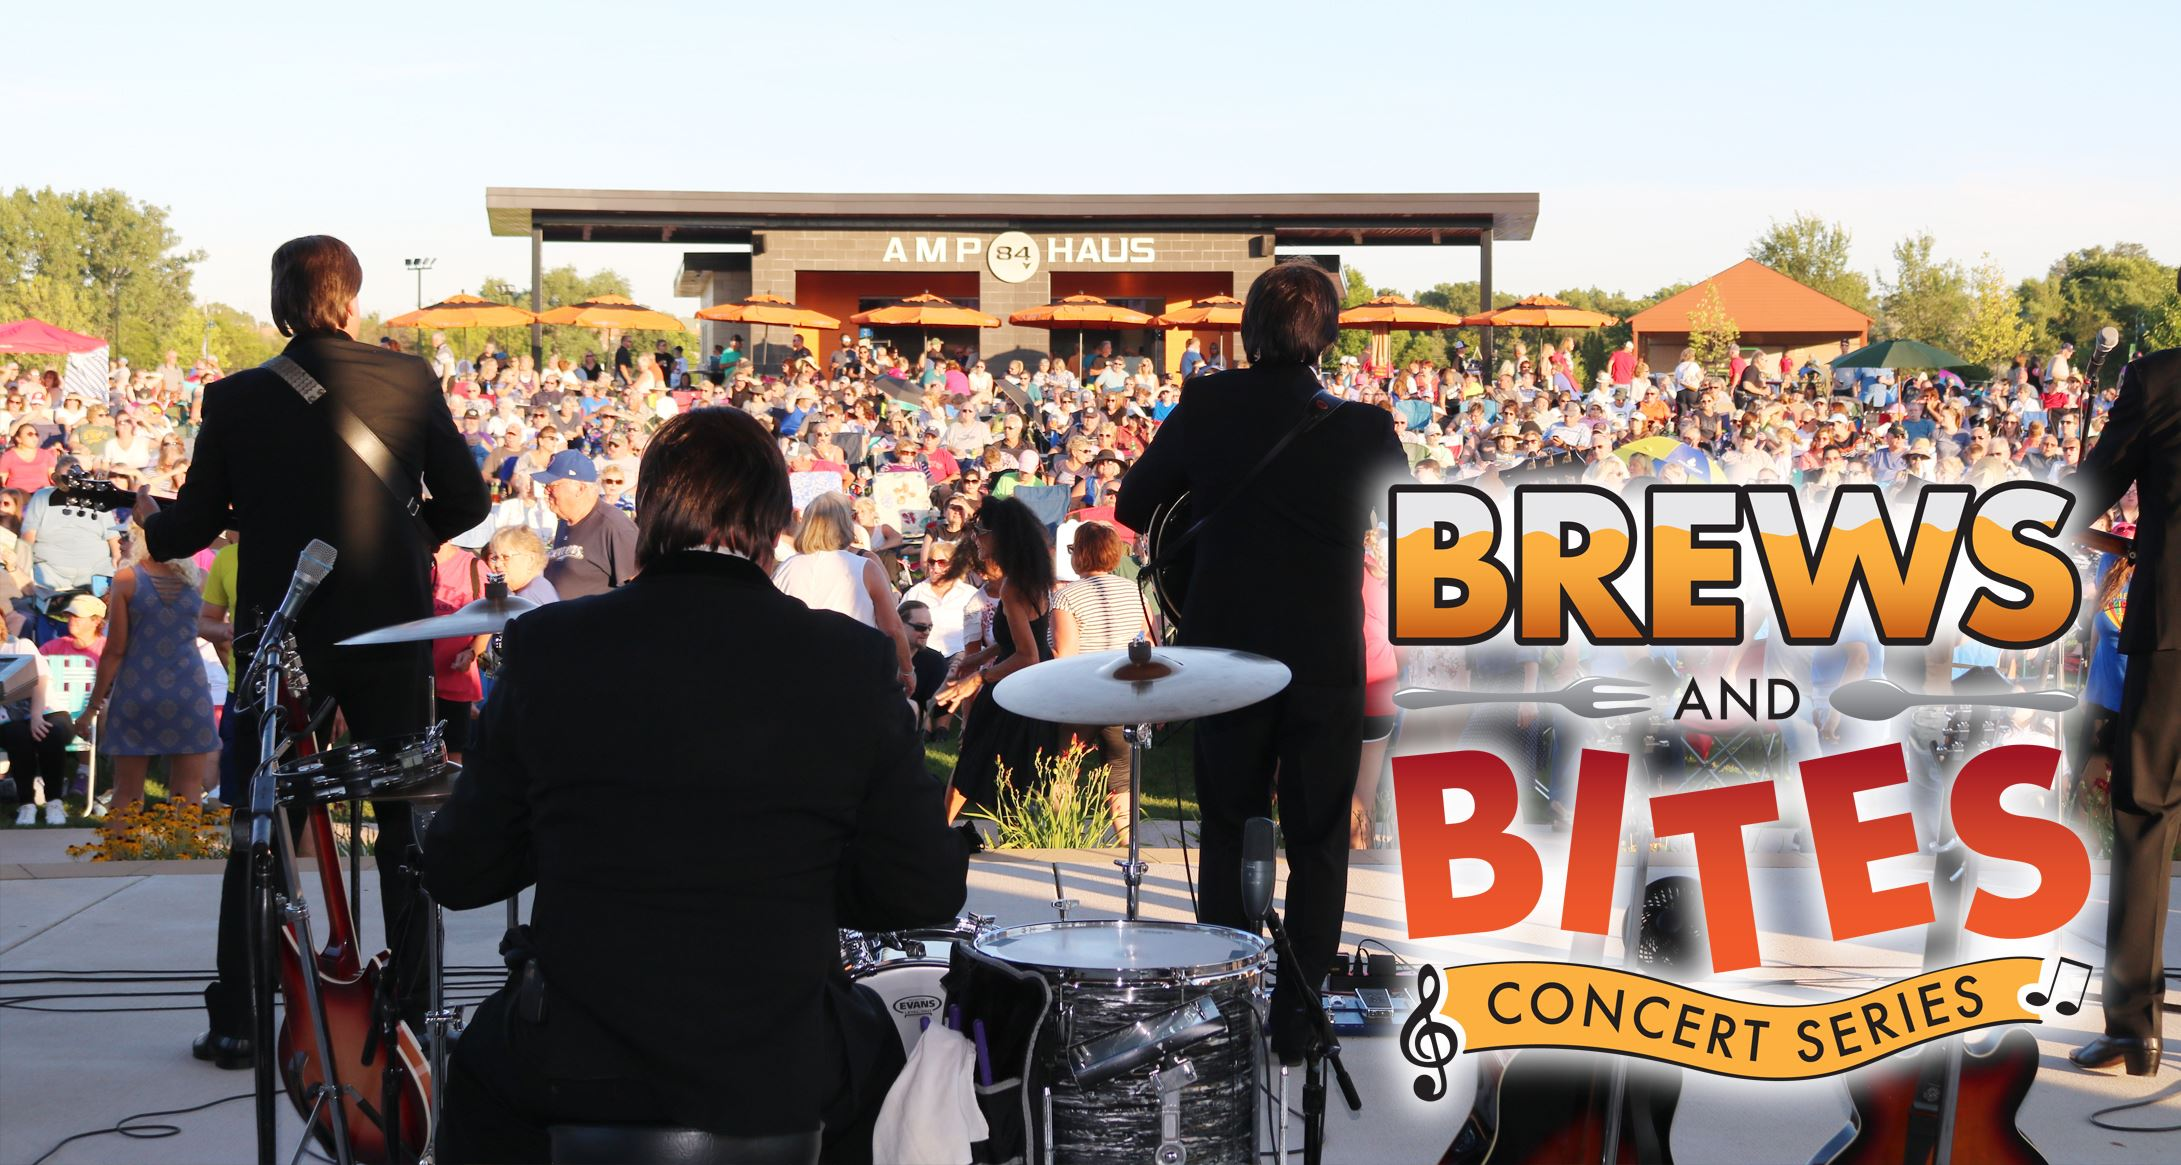 Brews and Bites Concert Series